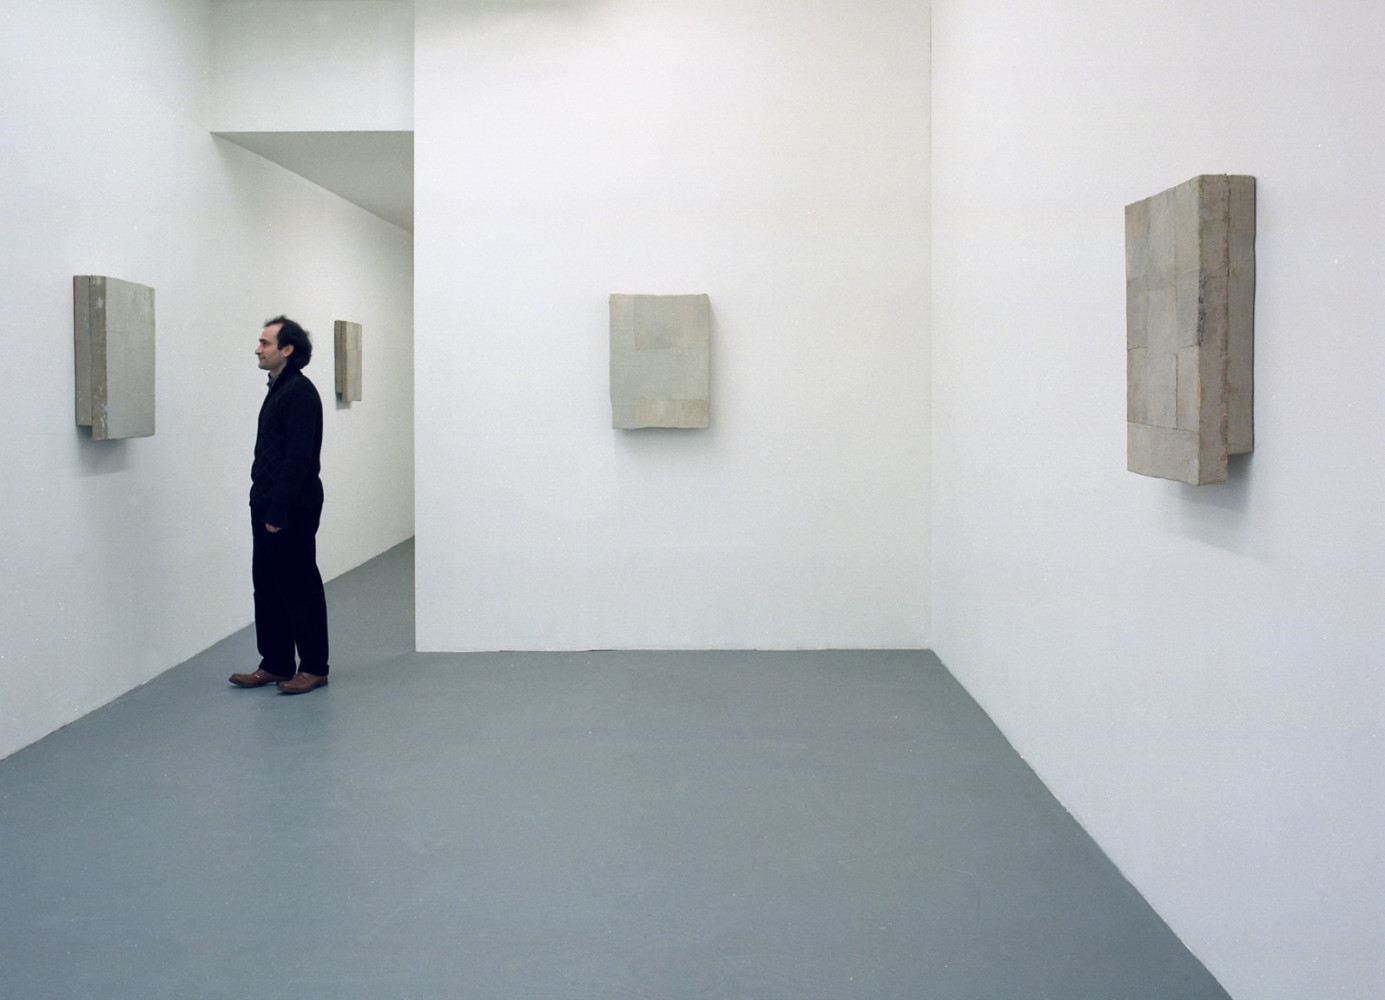 Lawrence Carroll, 'Shadow Paintings', Installation view, 2002